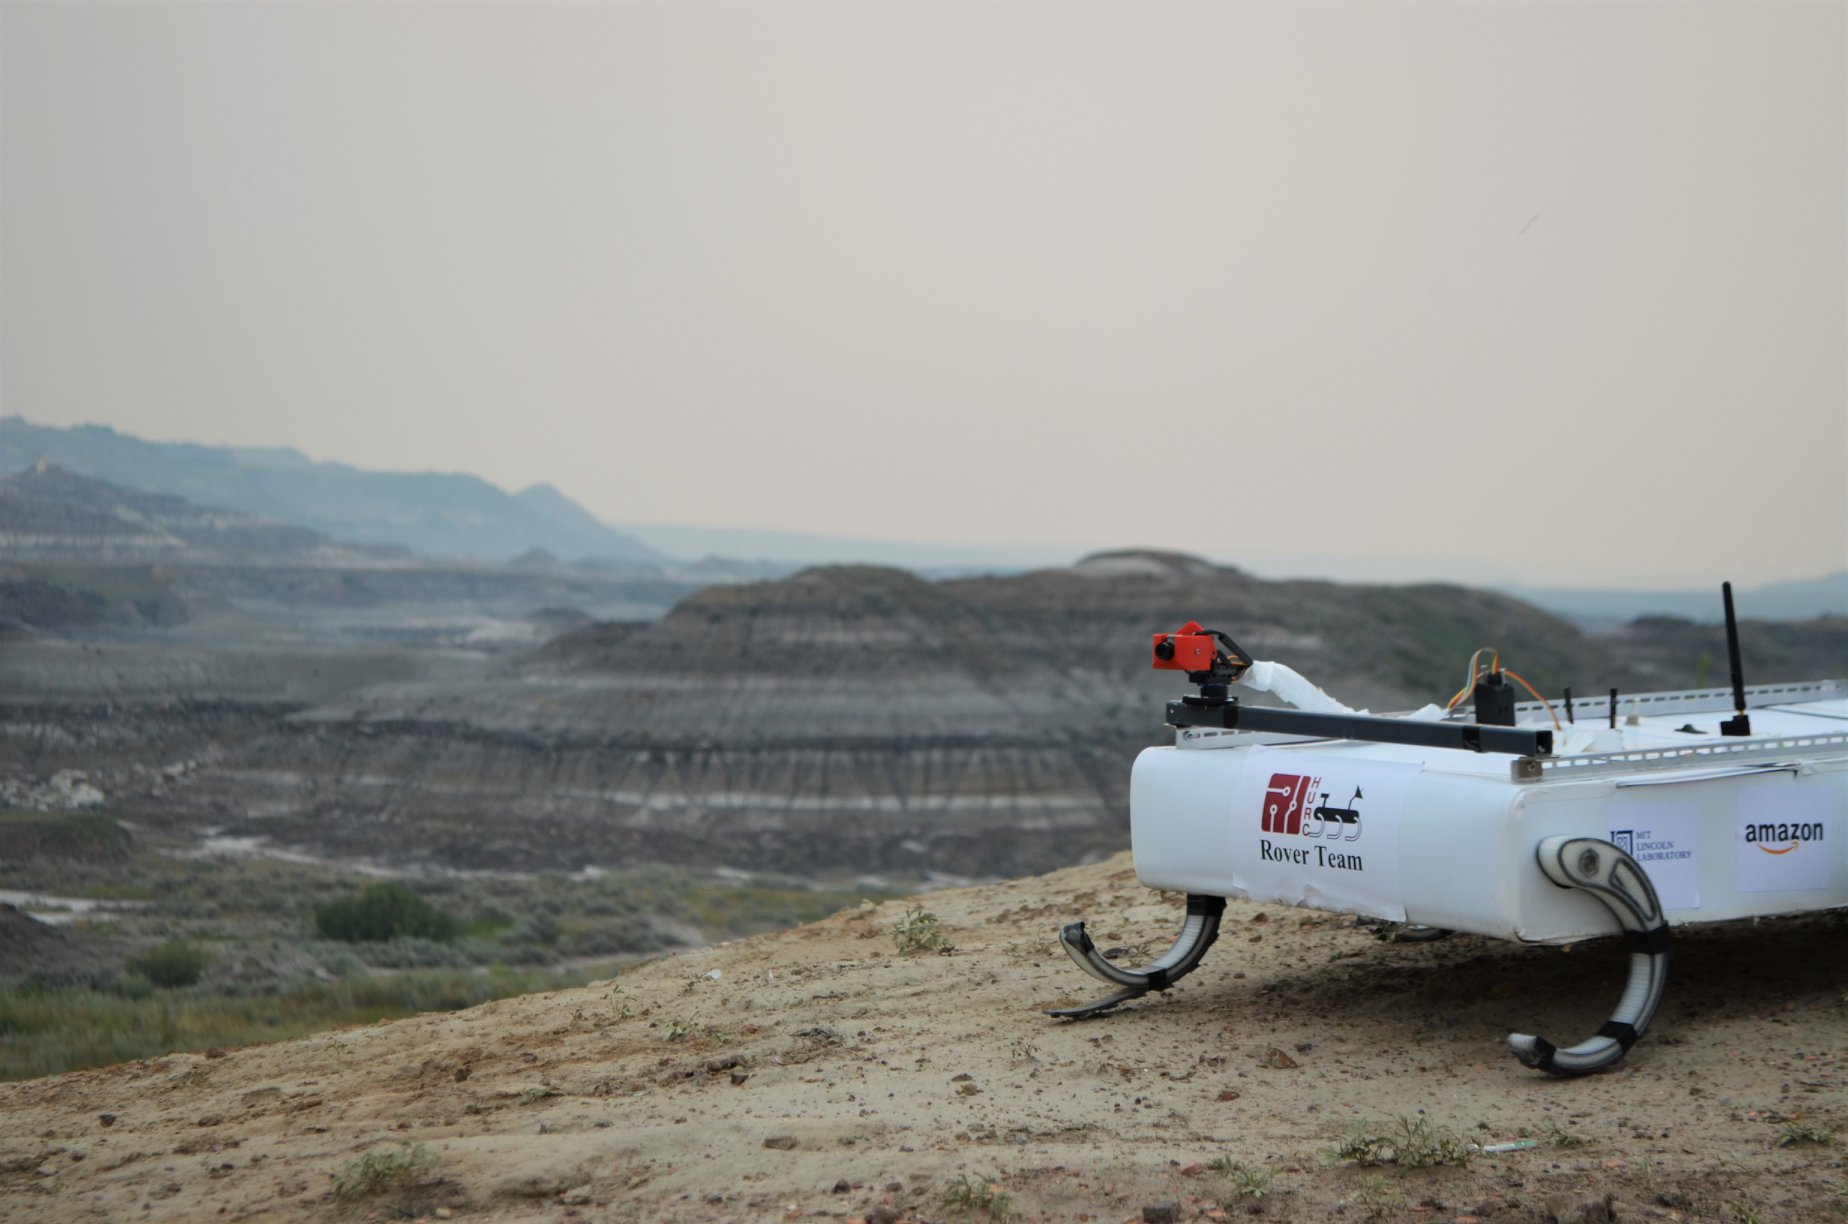 The Harvard team's Mars Rover conducted a search-and-rescue mission, repaired a piece of space equipment, and collected mineral samples during the Canadian International Rover Challenge. (Photo courtesy of the Harvard Undergraduate Robotics Club)